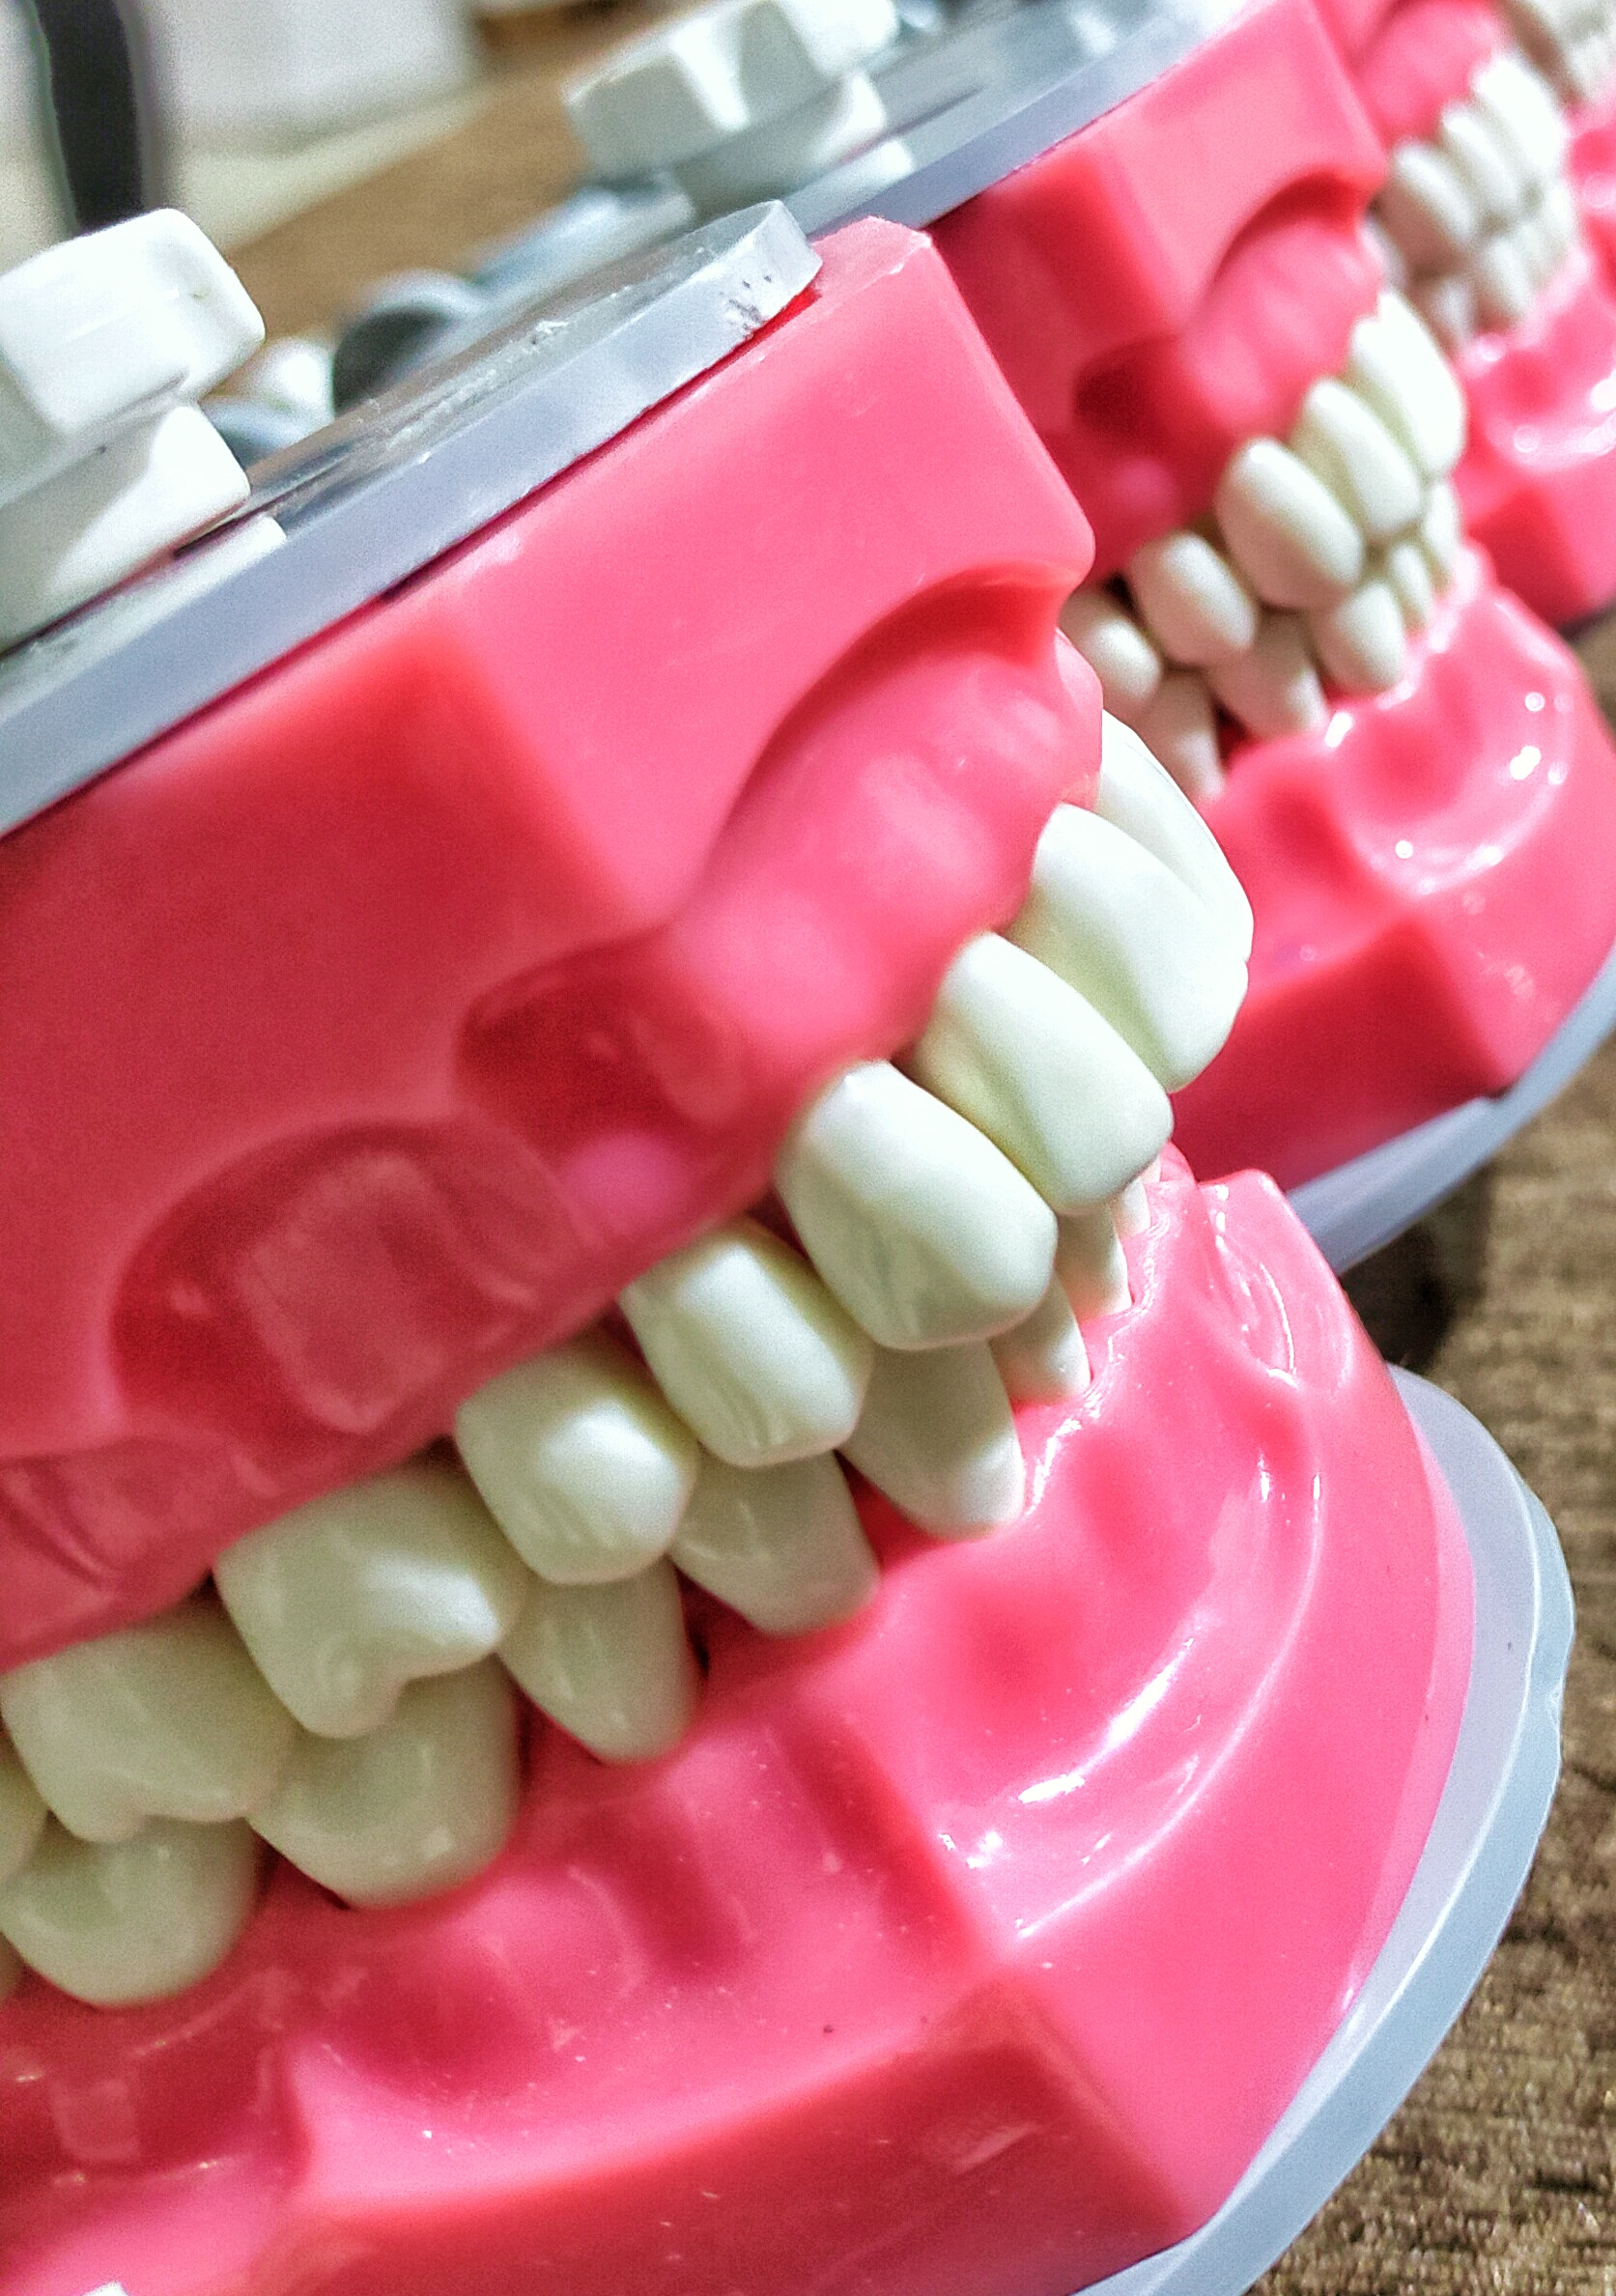 Artificial jaw set